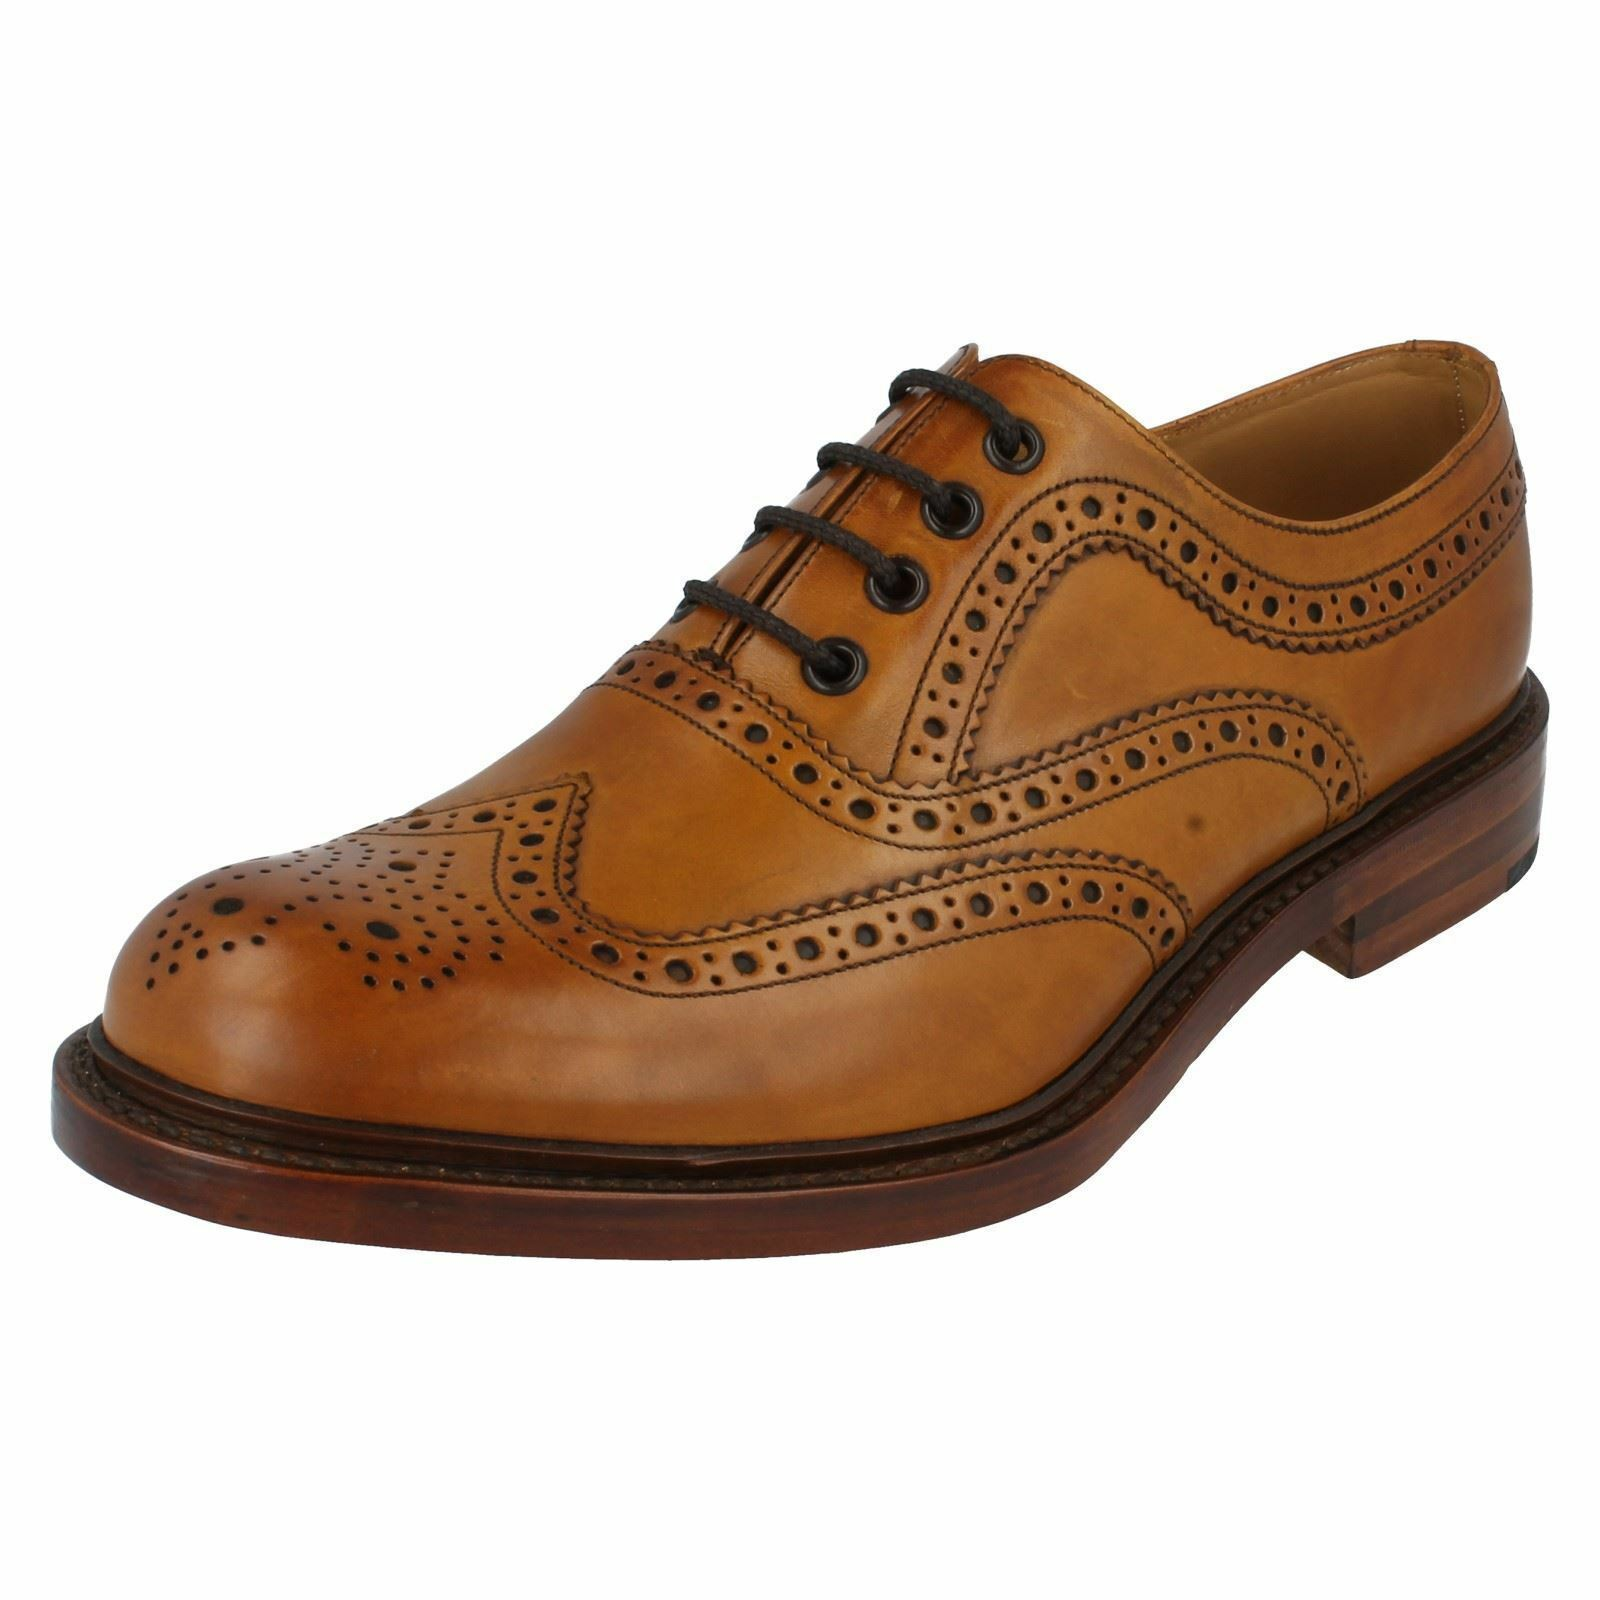 Hombre Loake Marrón Bruñido Pantorrilla Leather Zapato Oxford con Cordones Ashby